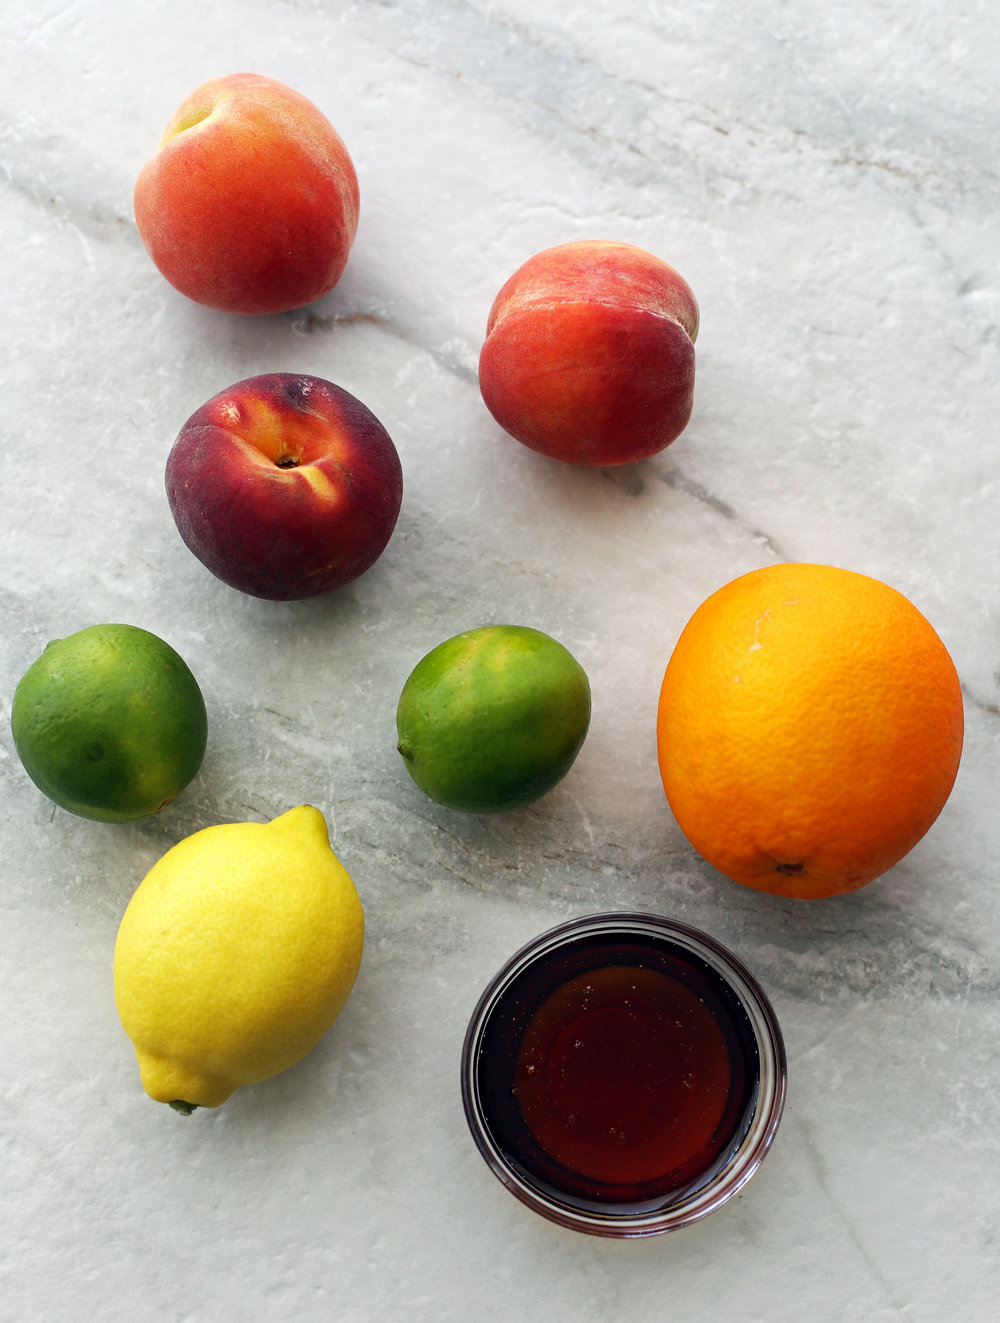 Three peaches, two limes, an orange, a lemon, and a bowl of maple syrup.